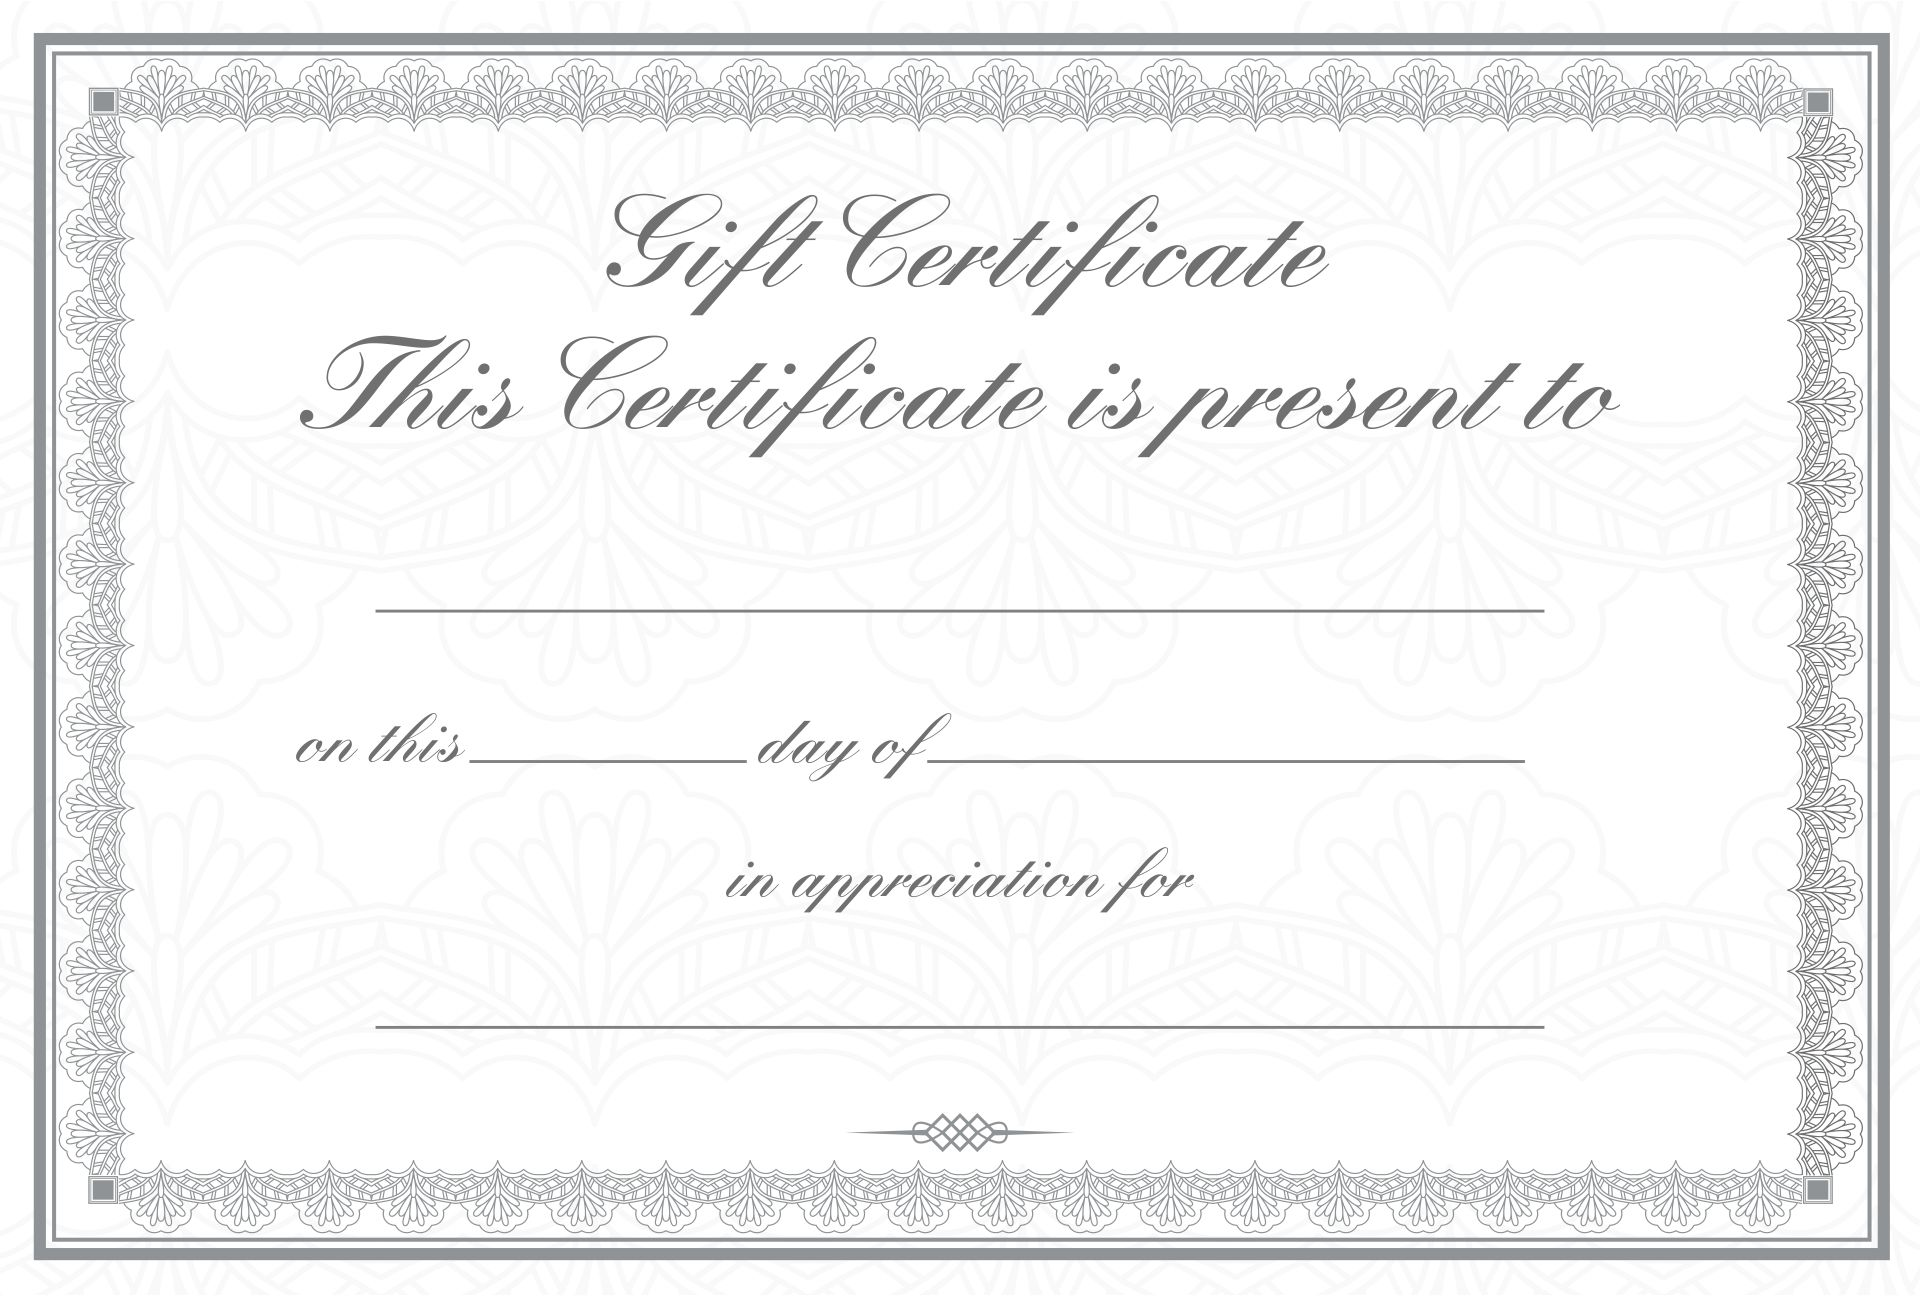 Gift Certificate Wording Pictures to Pin PinsDaddy – Gift Certificate Wording